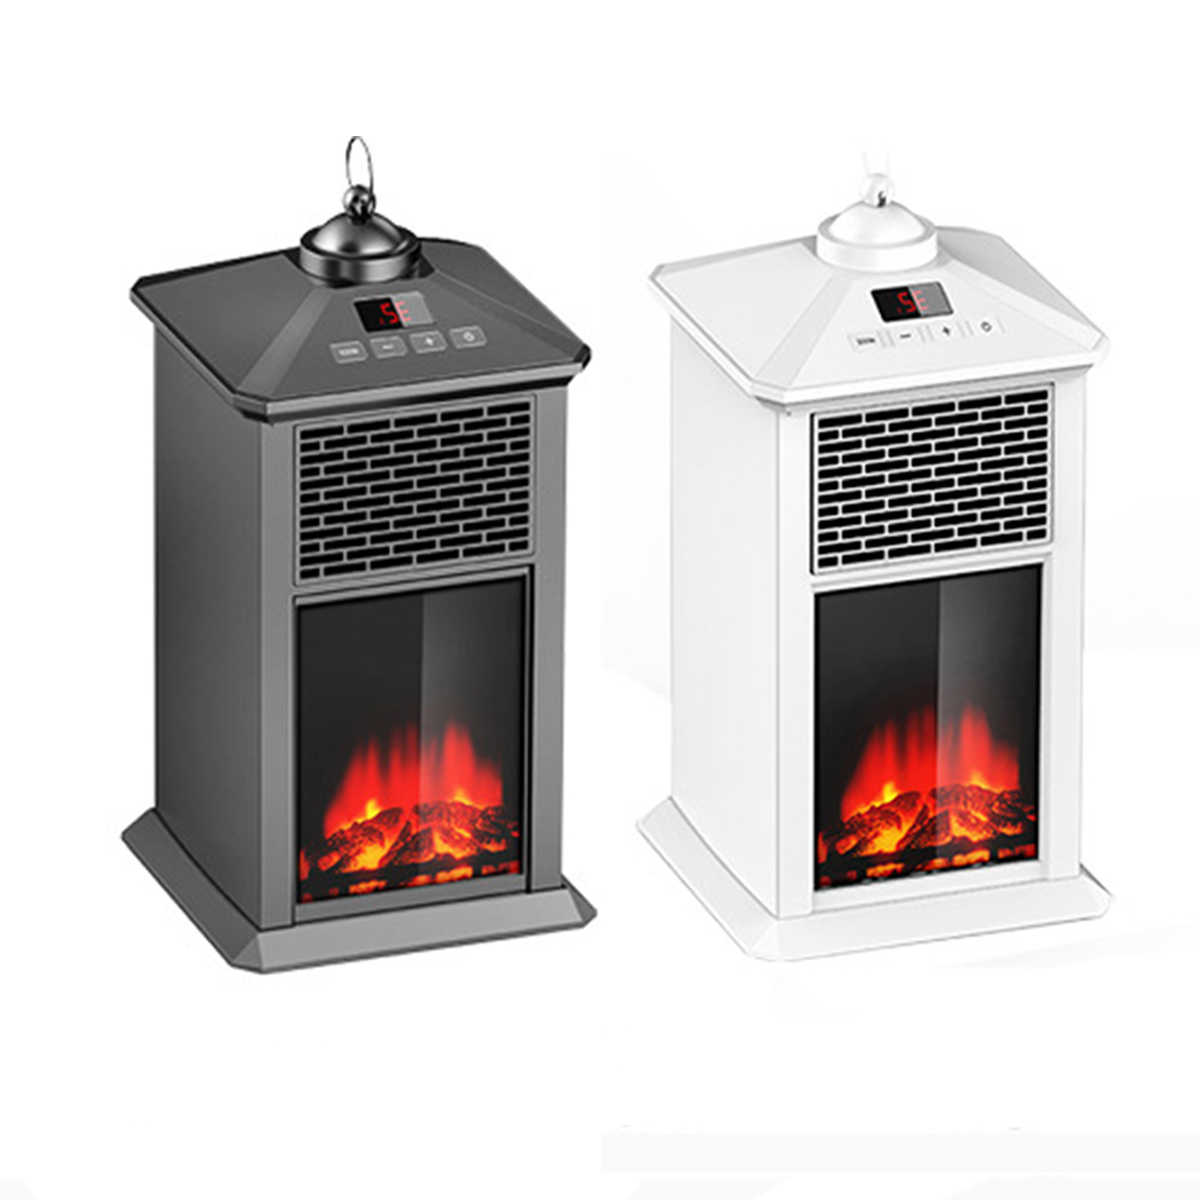 800w Electric Fireplace Heater Mini Portable Warmer For Indoor